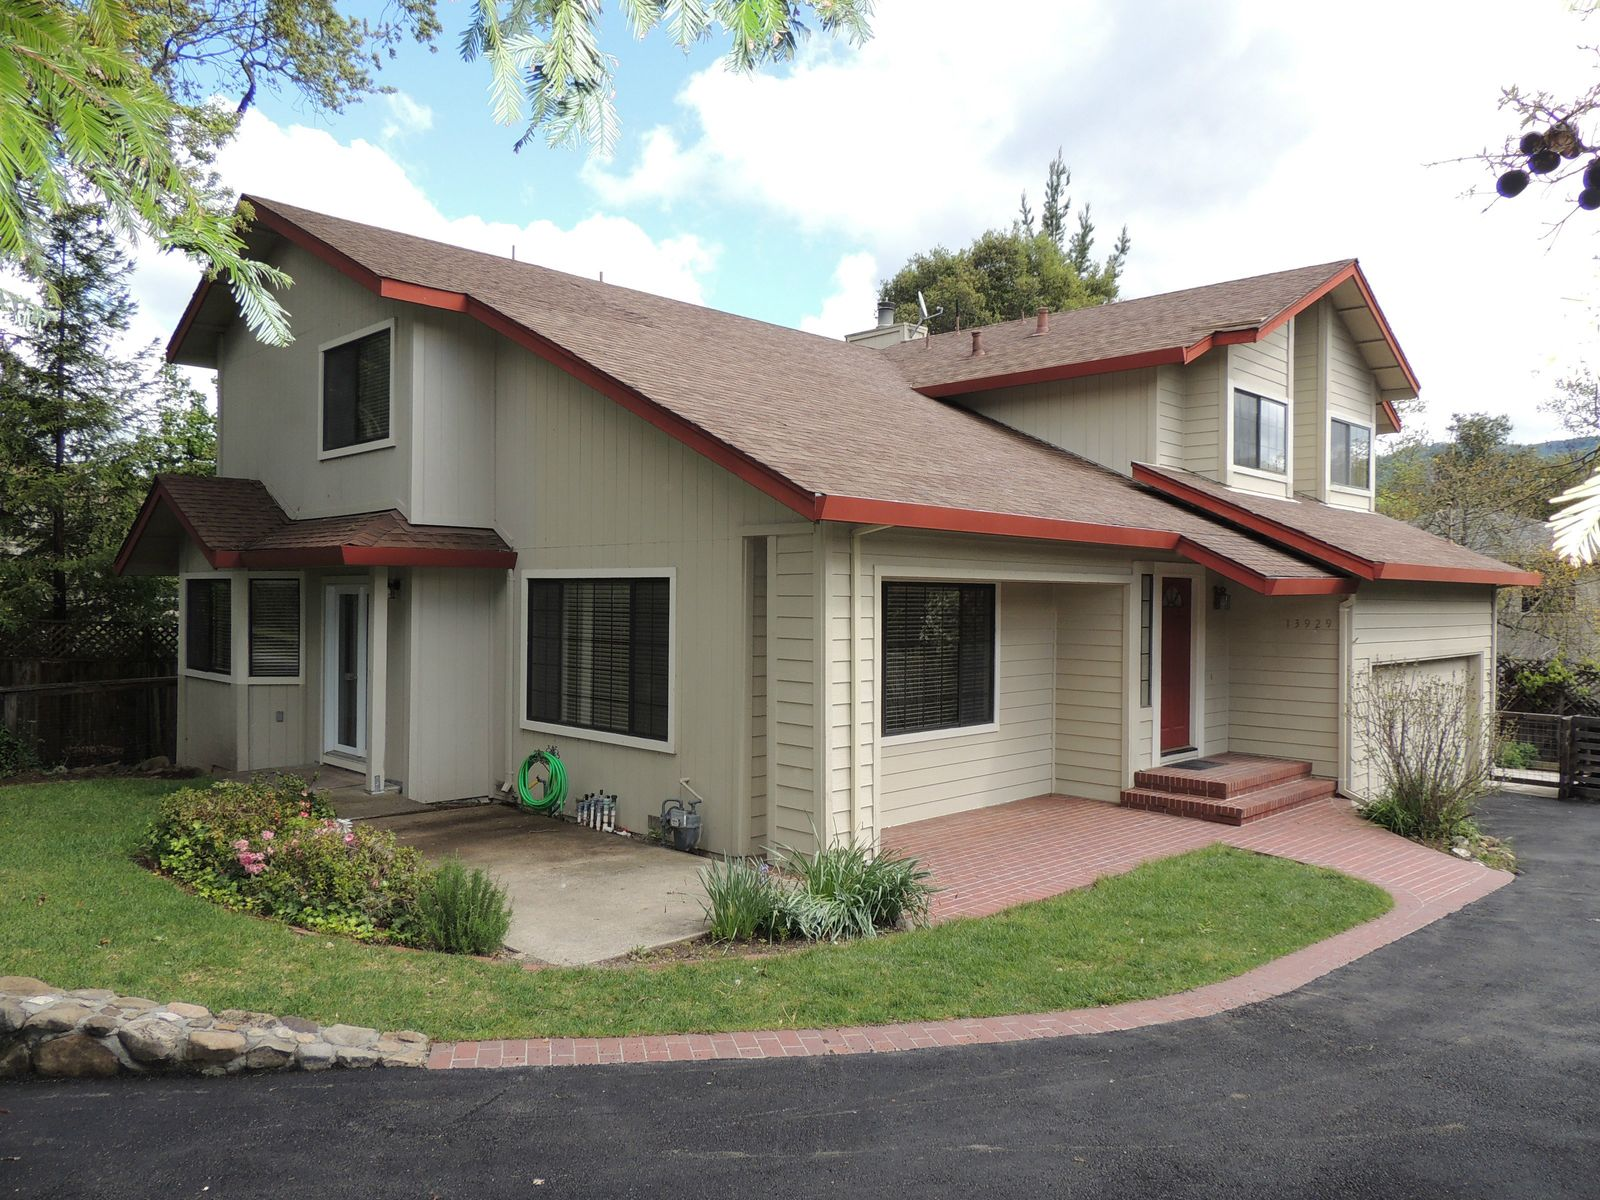 Spacious Home on a Hidden Lane, Sonoma CA Single Family Home - Sonoma - Napa Real Estate